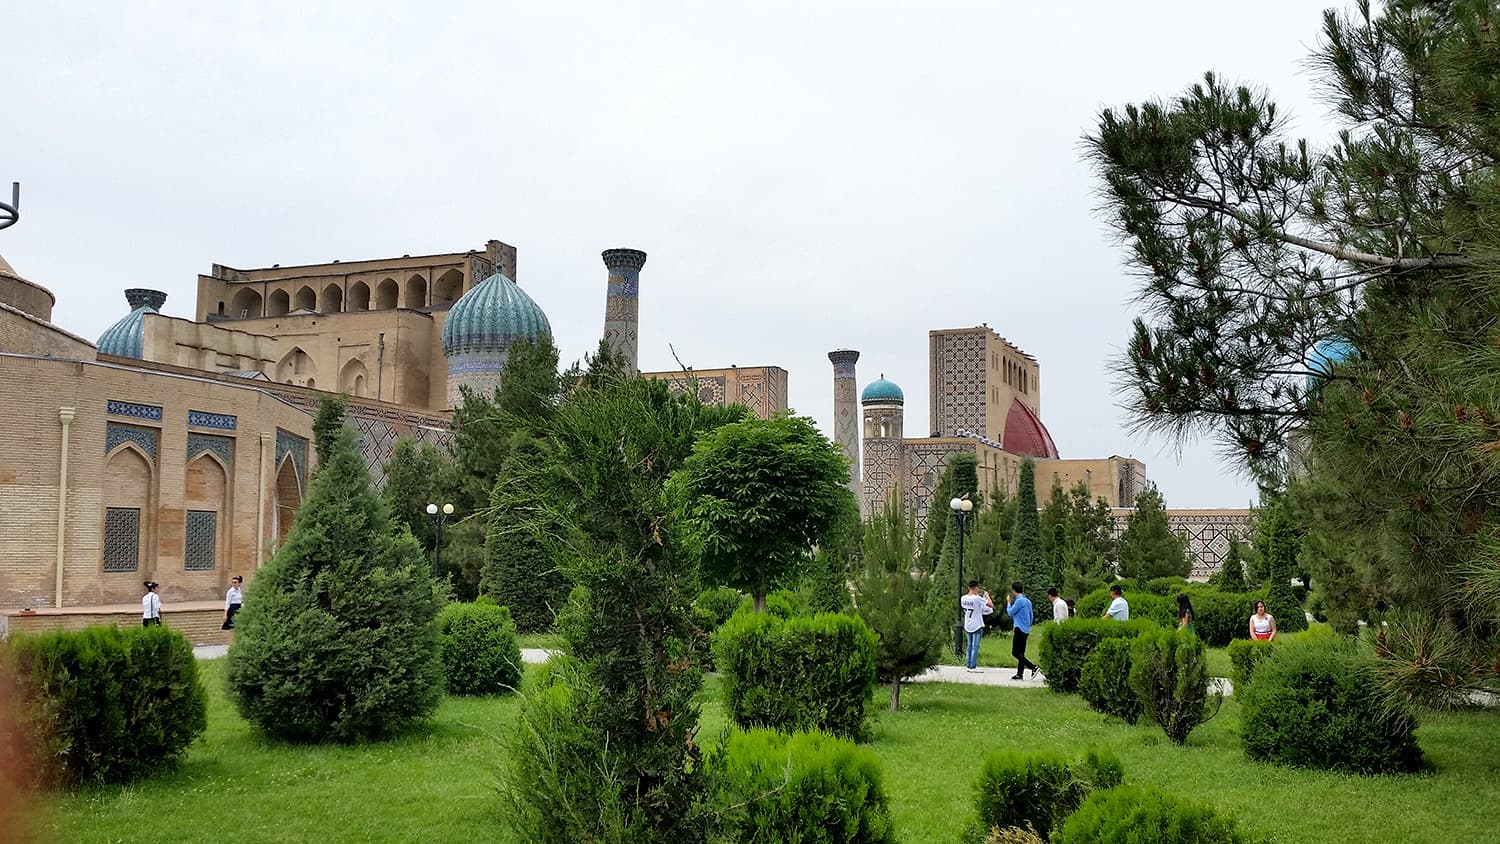 Registan area view, Samarkand. -All photos by author